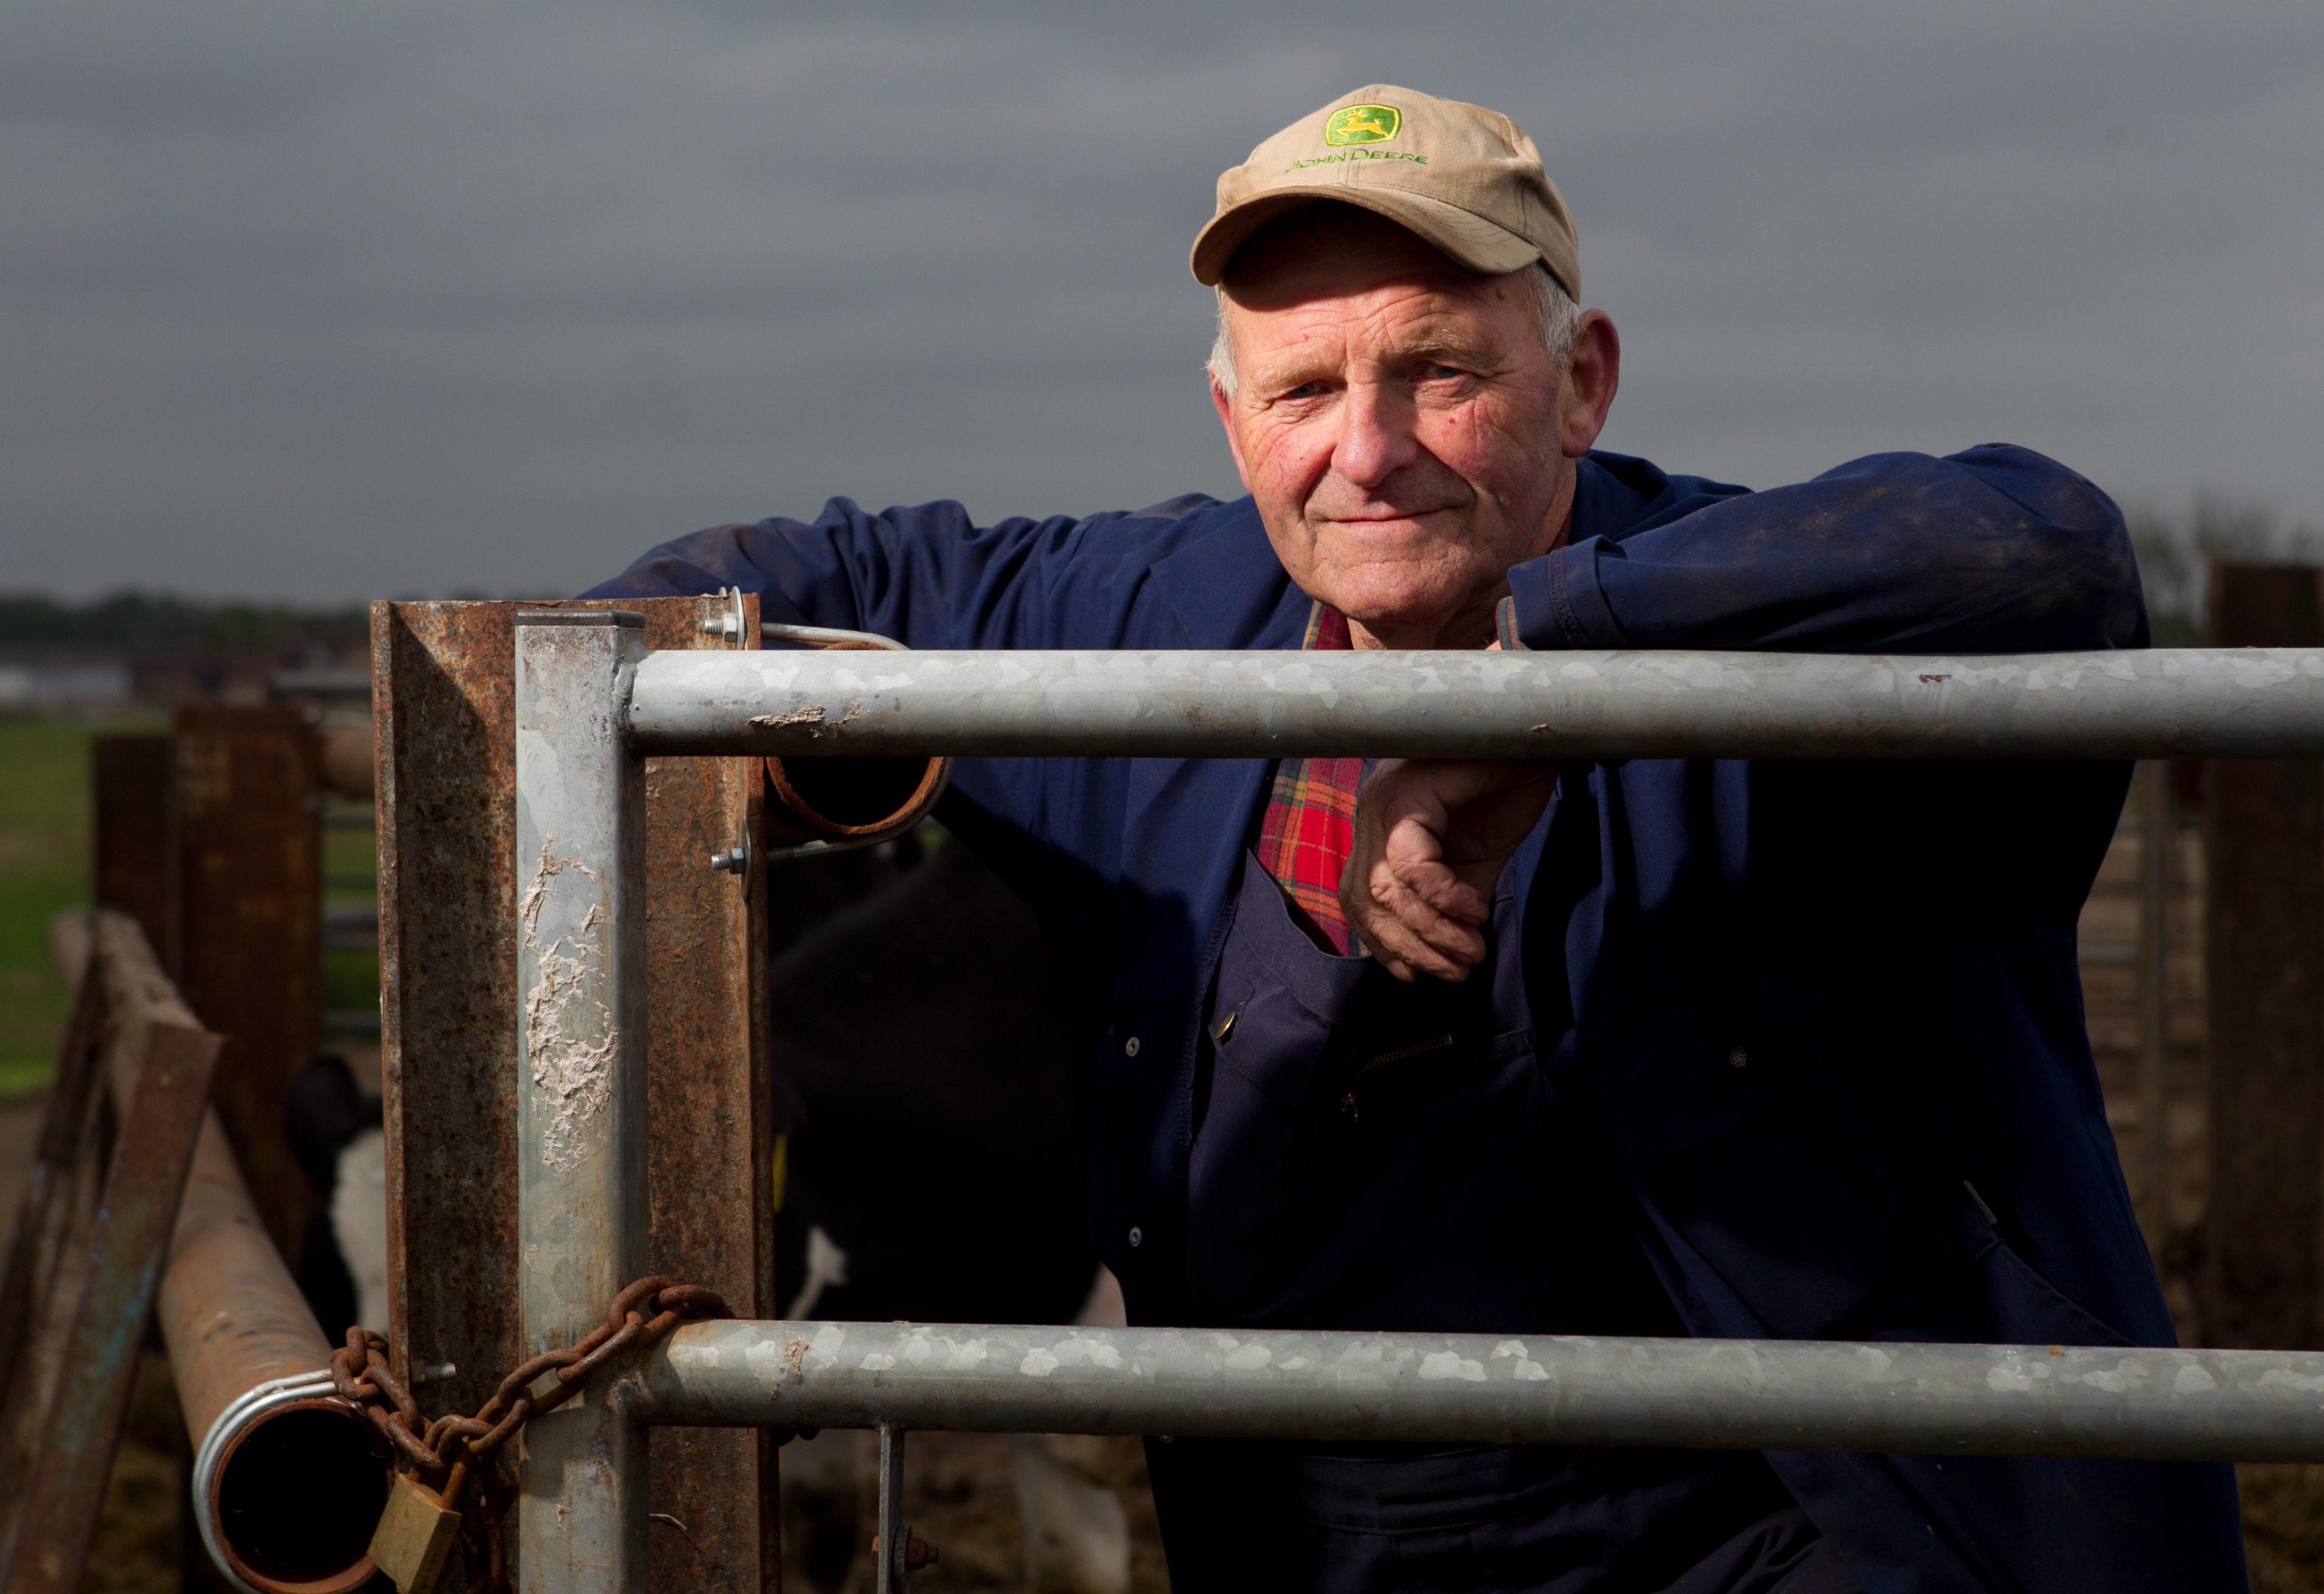 Willie Wilson, 74 year old farmer (Andrew Cawley/ Sunday Post)